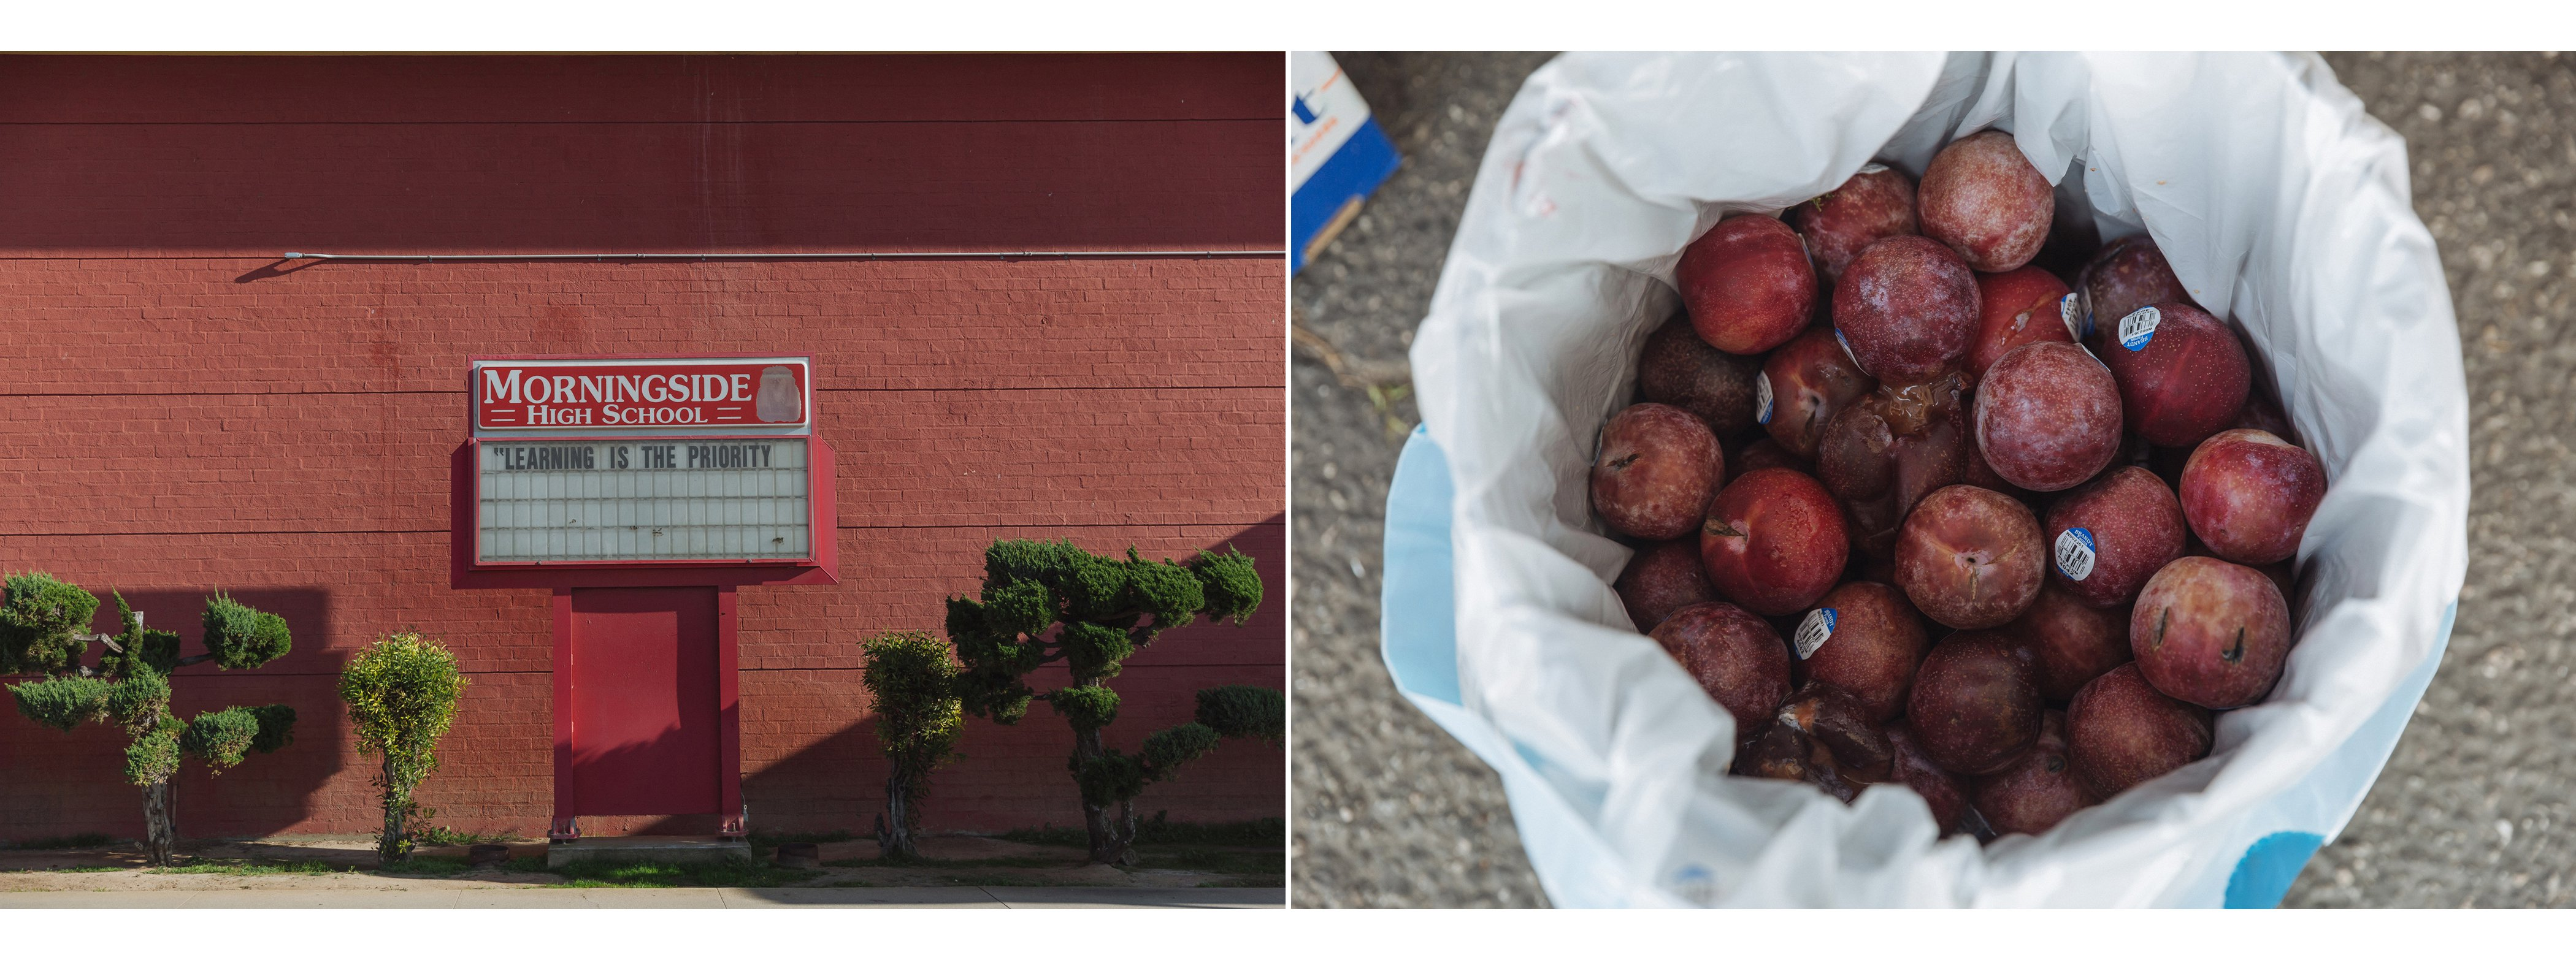 globalcitizenFoodInsecurity_kaylareeferphoto-diptych-SJLI-Edit.jpg